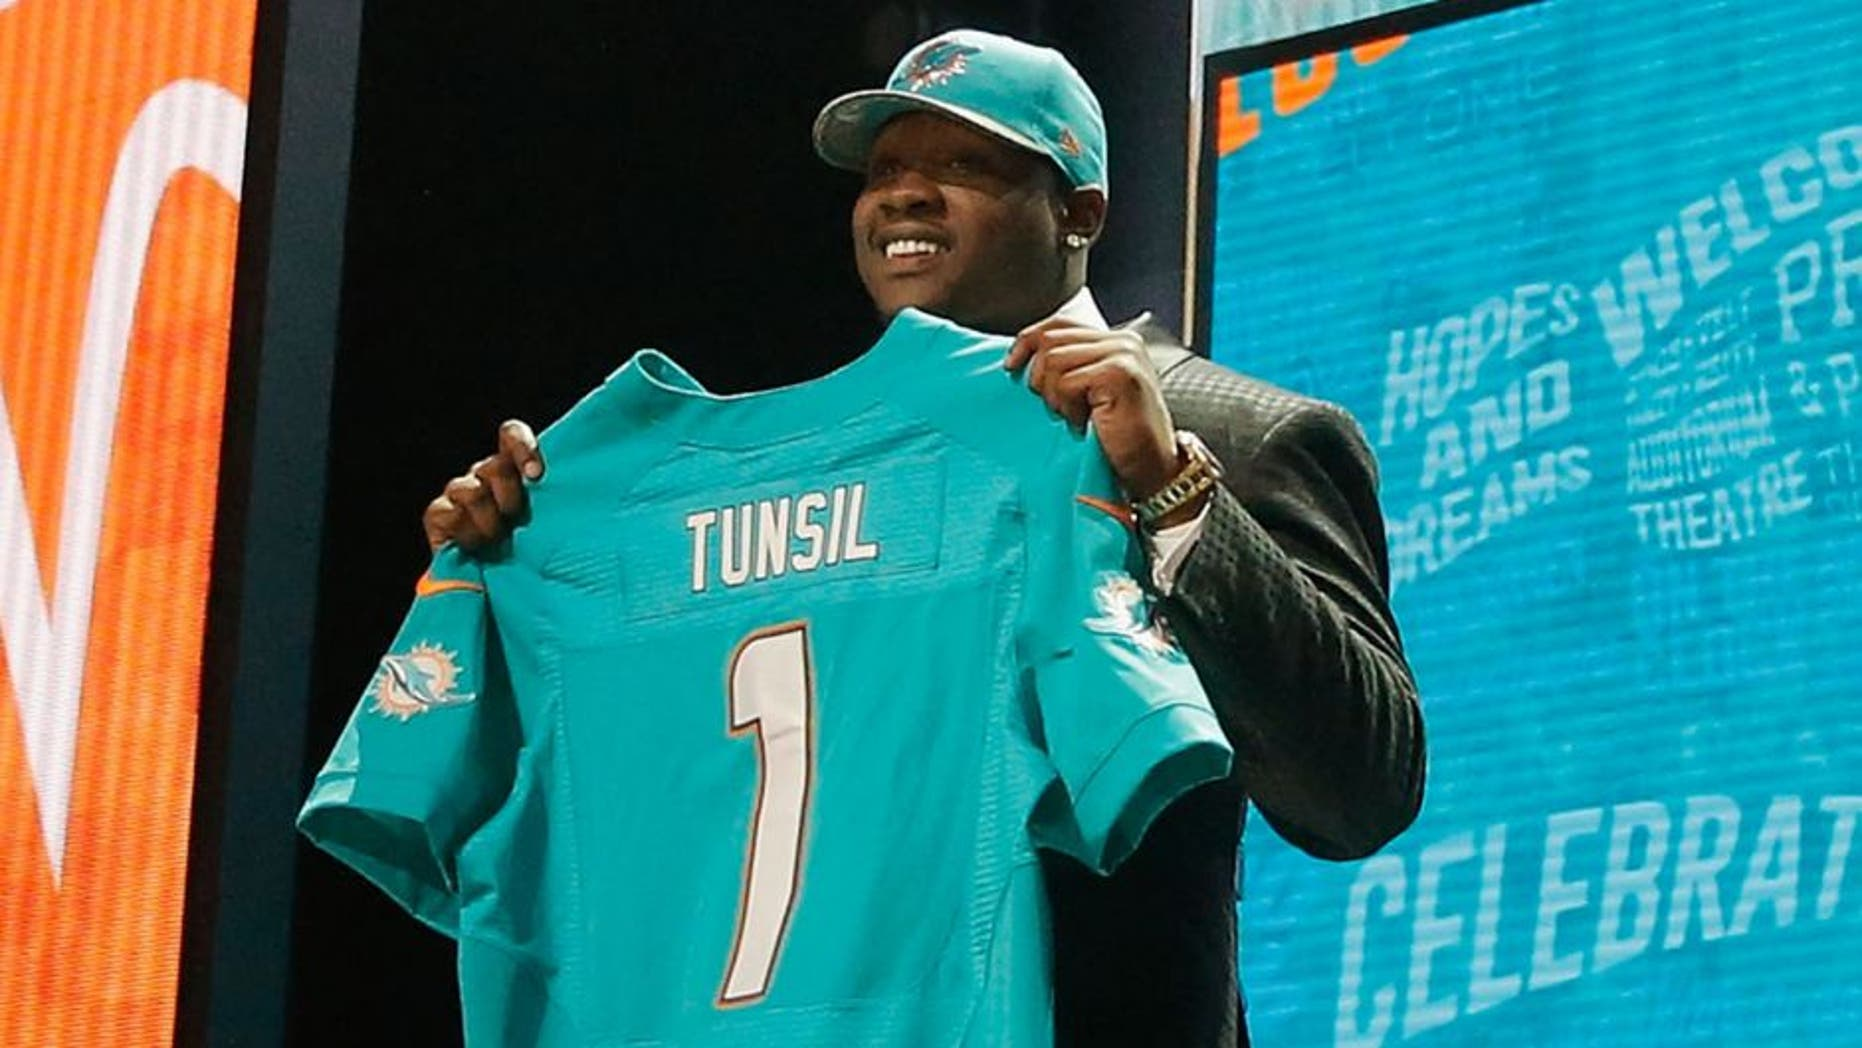 CHICAGO, IL - APRIL 28: Laremy Tunsil of Ole Miss holds up a jersey after being picked #13 overall by the Miami Dolphins during the first round of the 2016 NFL Draft at the Auditorium Theatre of Roosevelt University on April 28, 2016 in Chicago, Illinois. (Photo by Jon Durr/Getty Images)